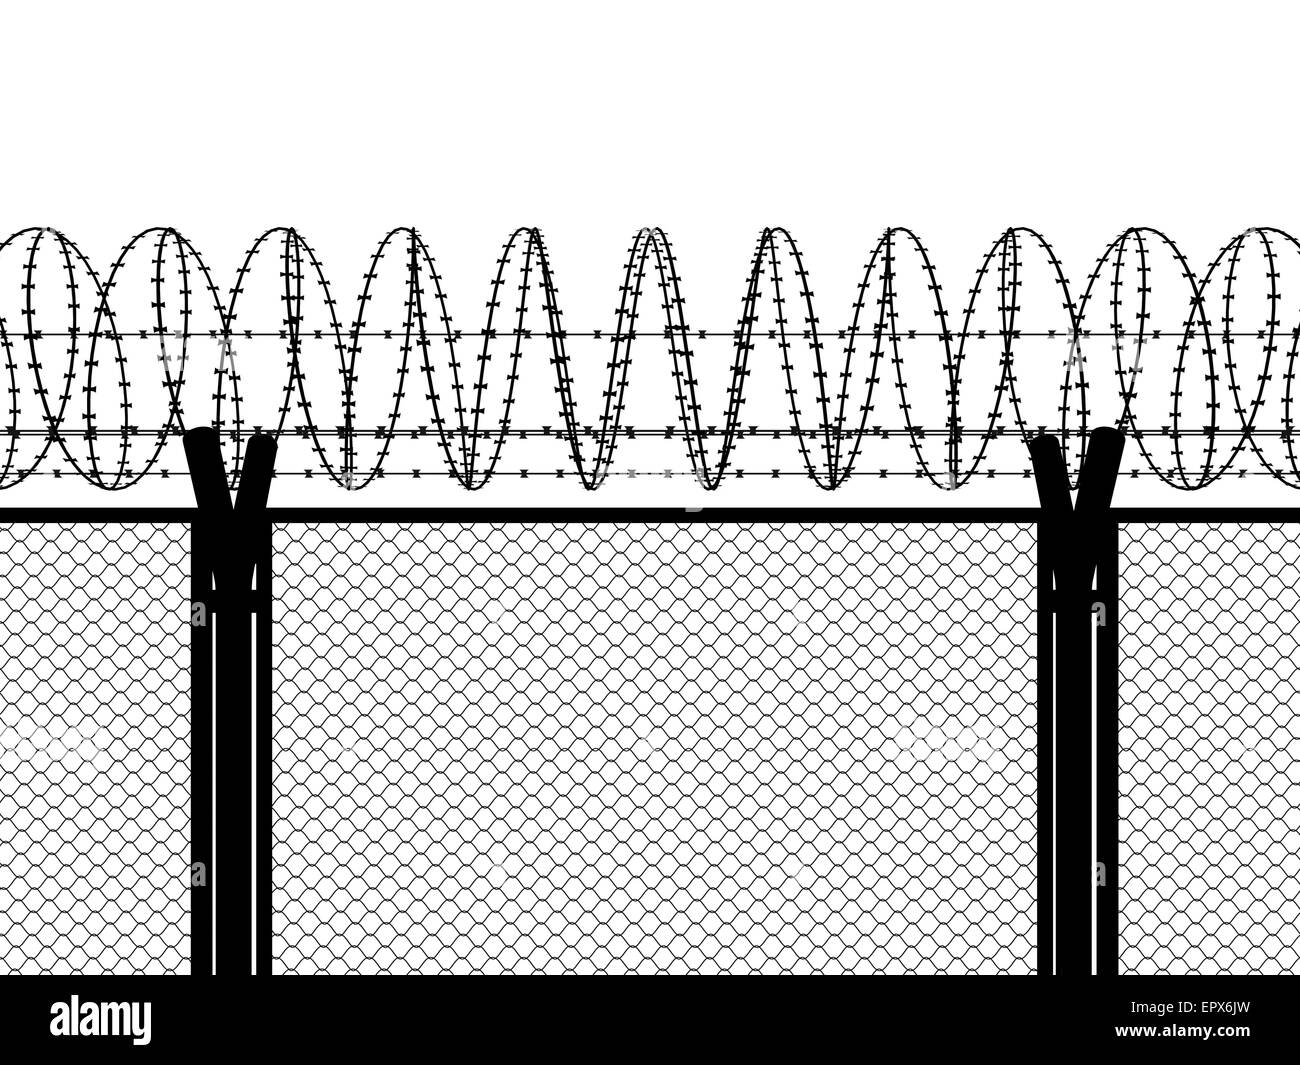 fence barbed wire silhouette illustration stock photos & fence barbed wire text fence with a barbed wire, silhouette illustration stock image